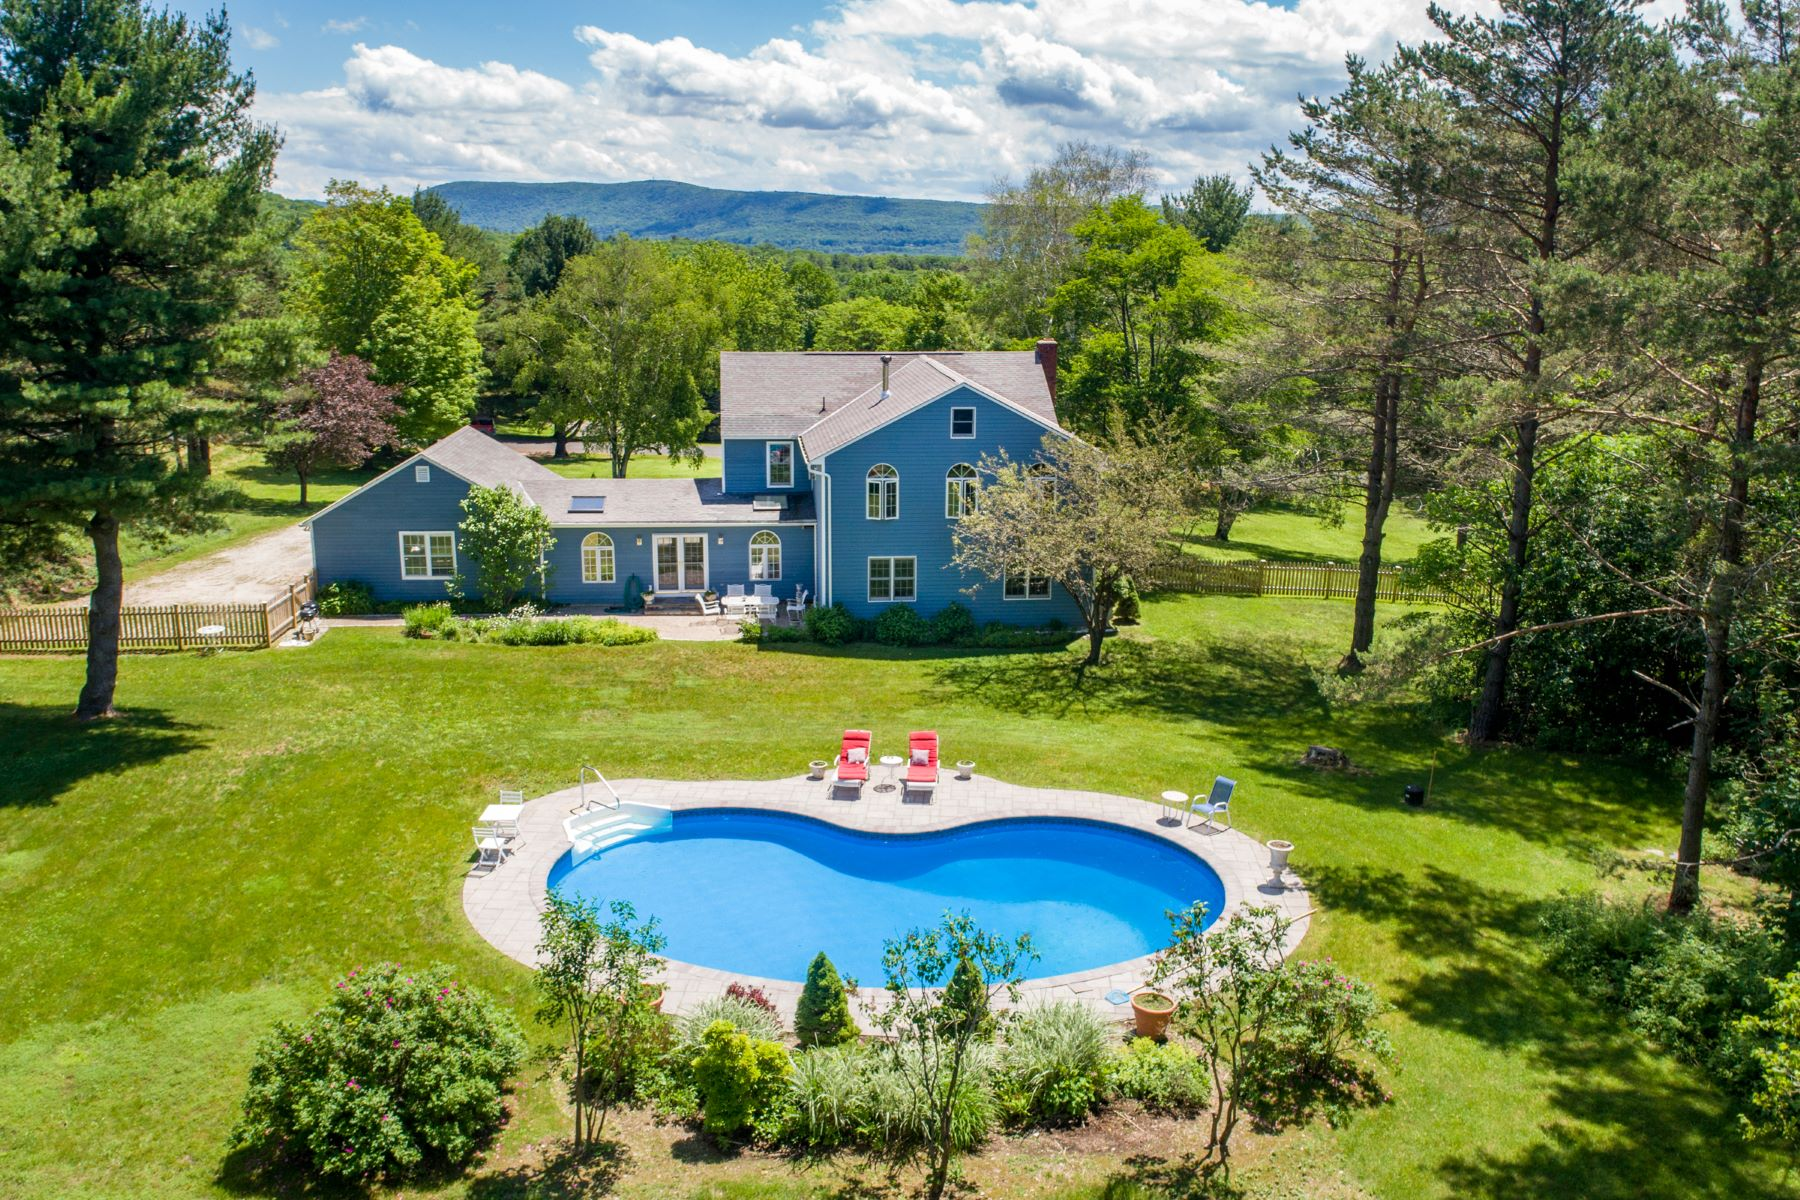 Casa Unifamiliar por un Venta en Classic Colonial with Privacy and Pool 91 Deer Hill Rd Richmond, Massachusetts 01254 Estados Unidos